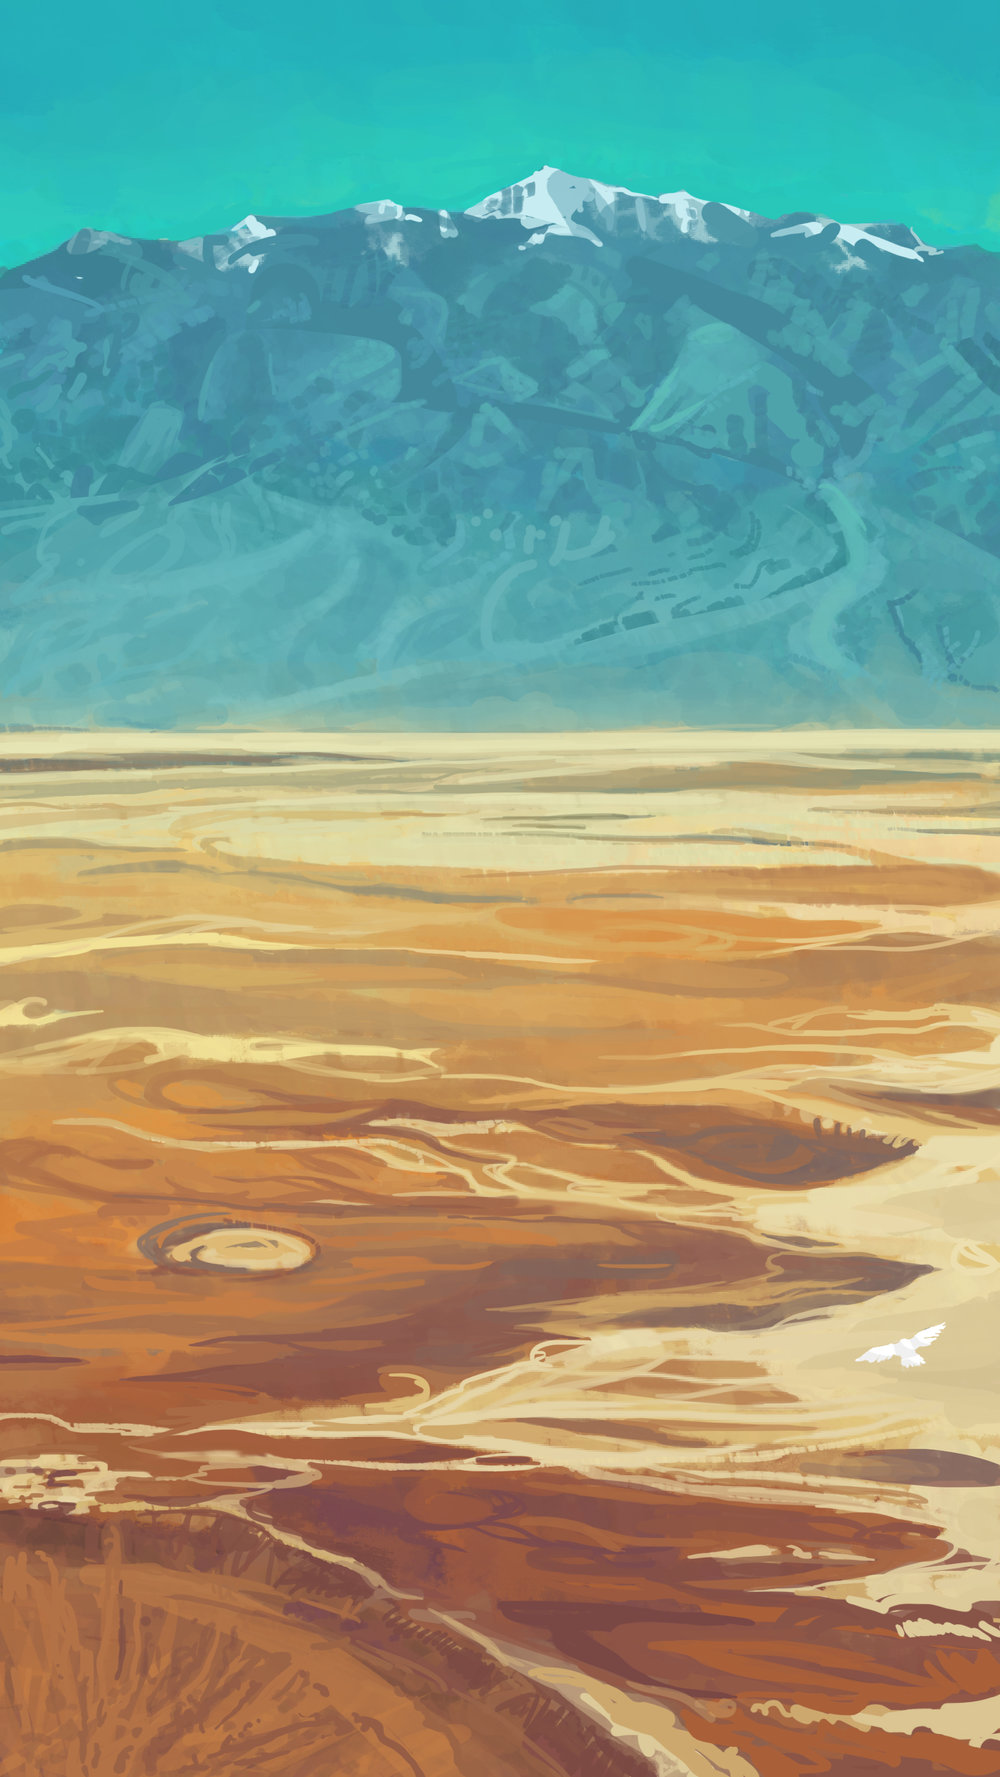 Death Valley Illustration 3.jpg